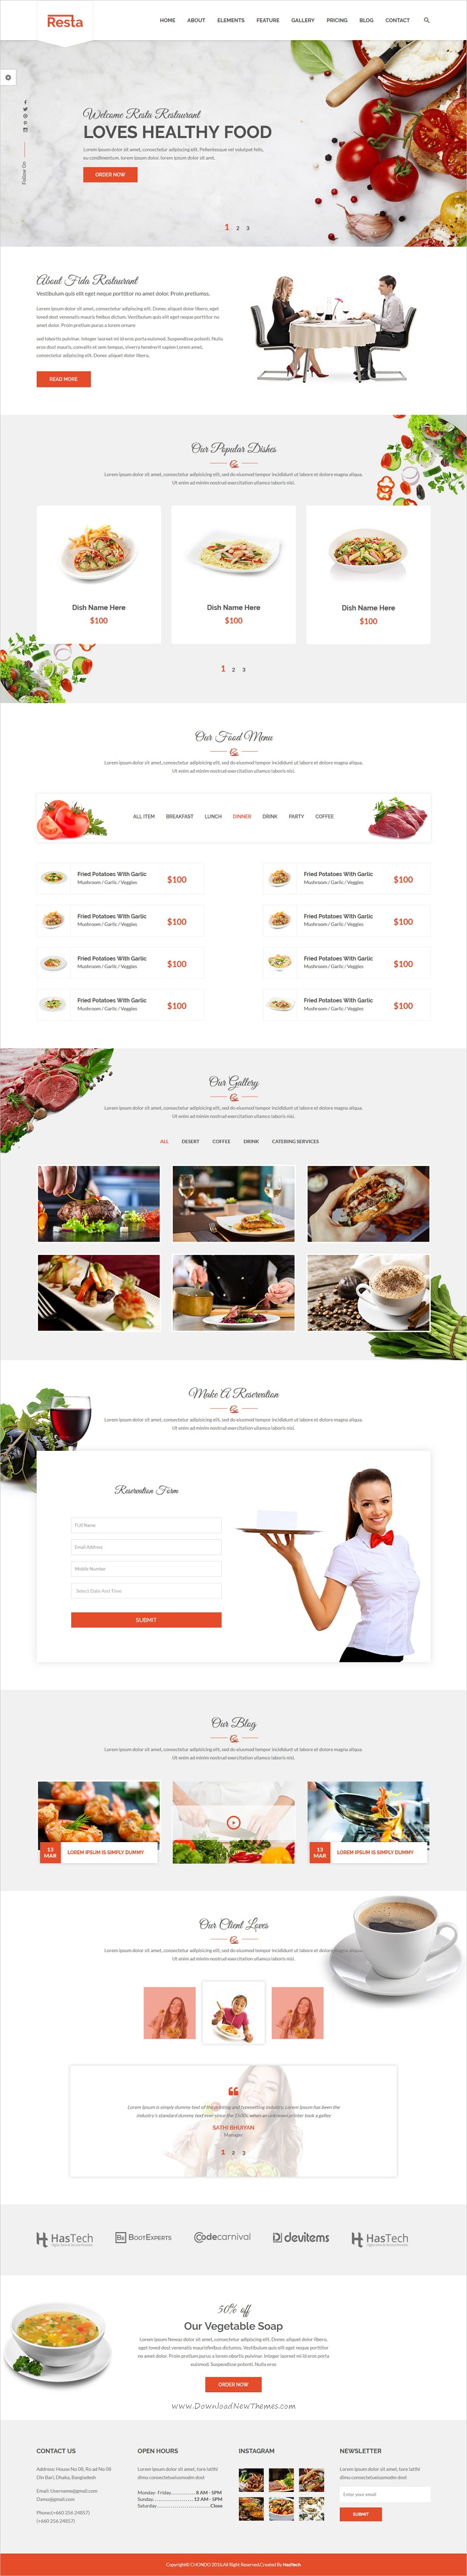 Resta Is A Wonderful Responsive Html Bootstrap Template For